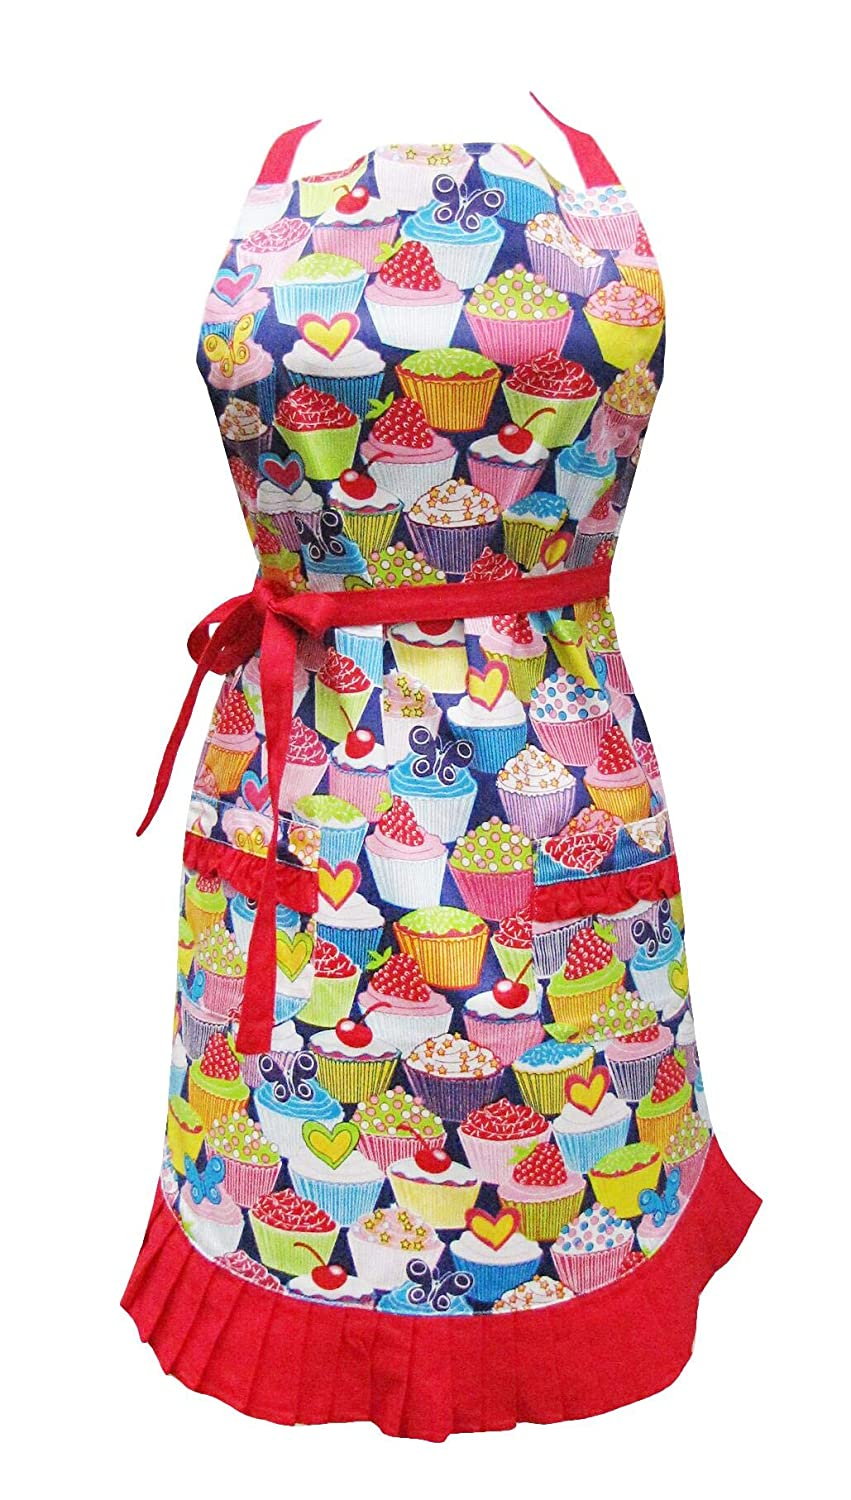 Two Lumps of Sugar Adult Ruffle Apron - Cupcakes Design